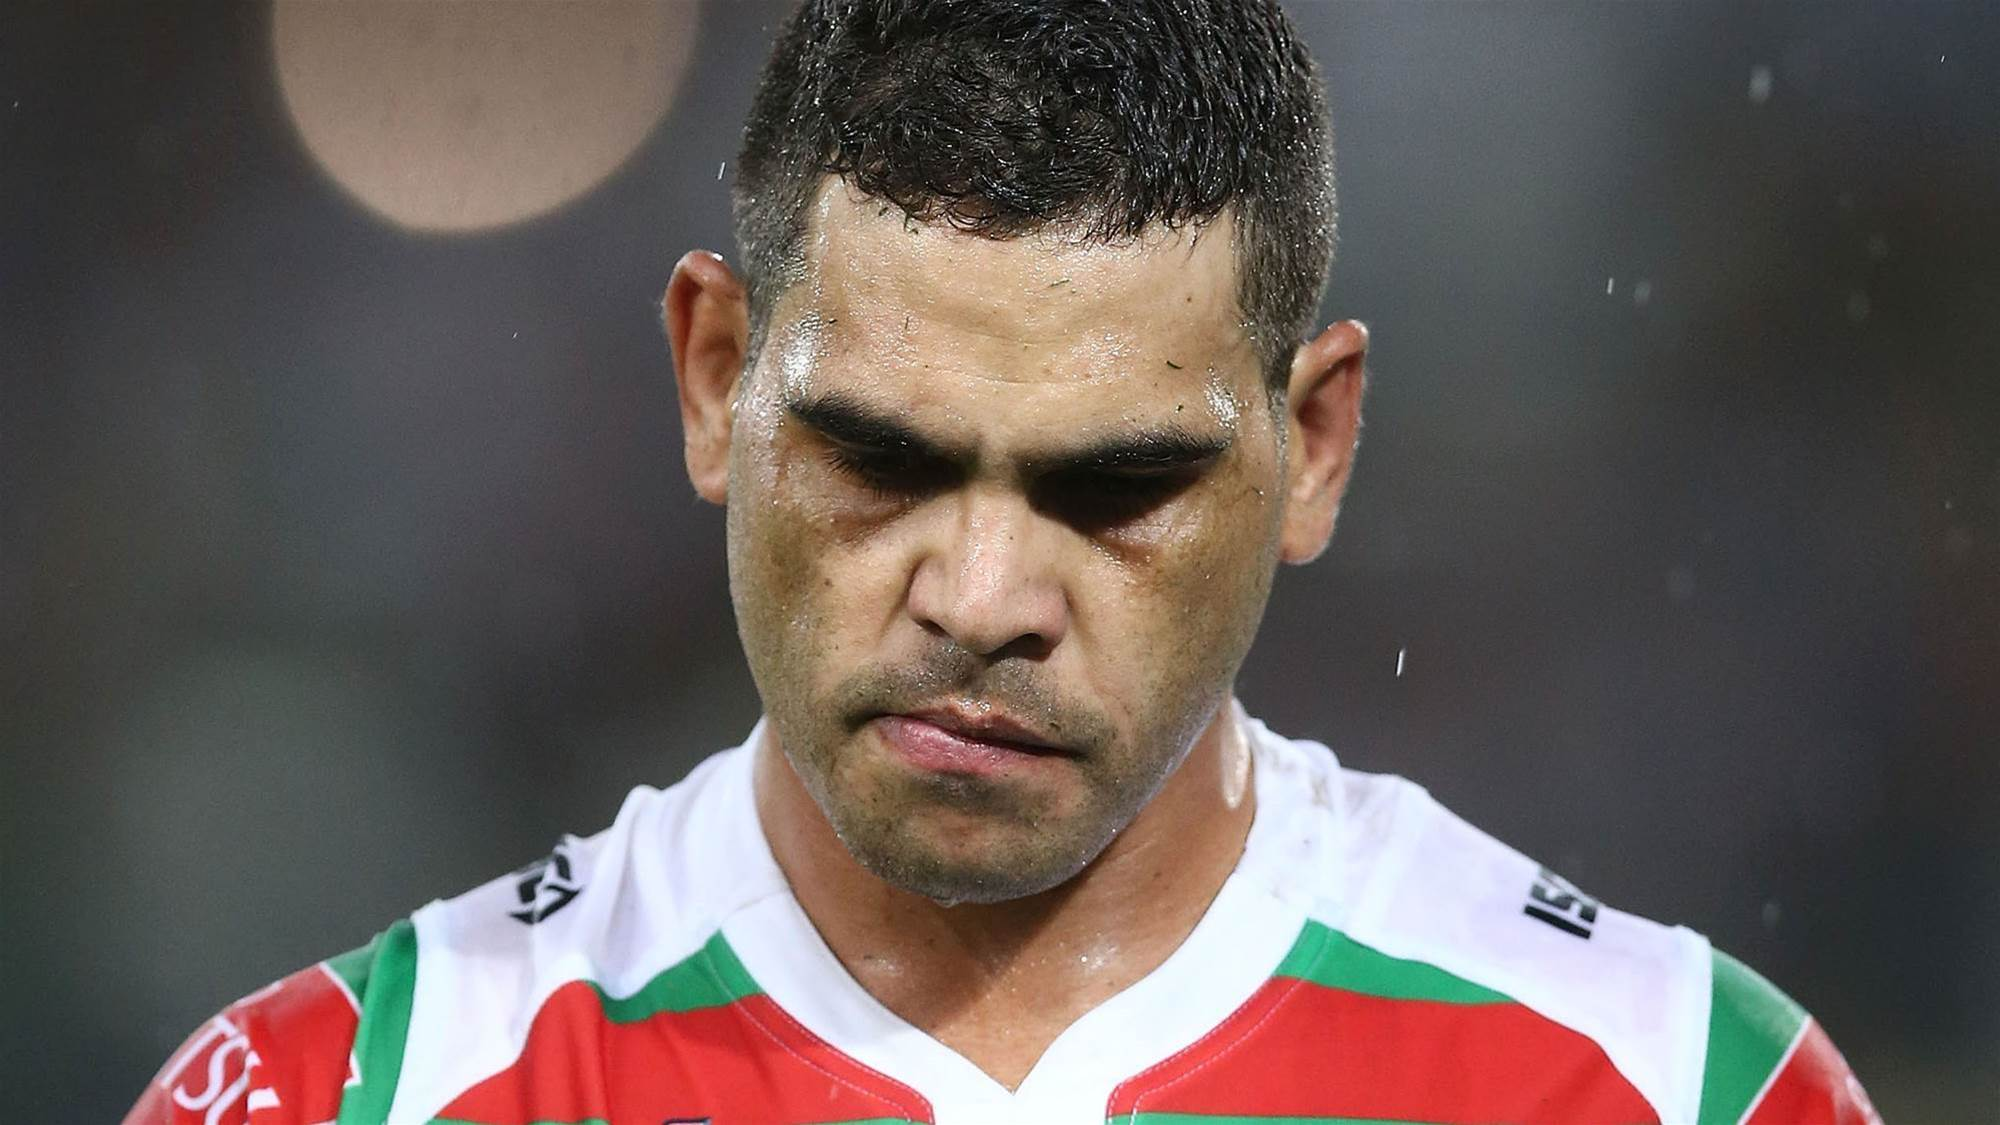 Inglis in mental health facility